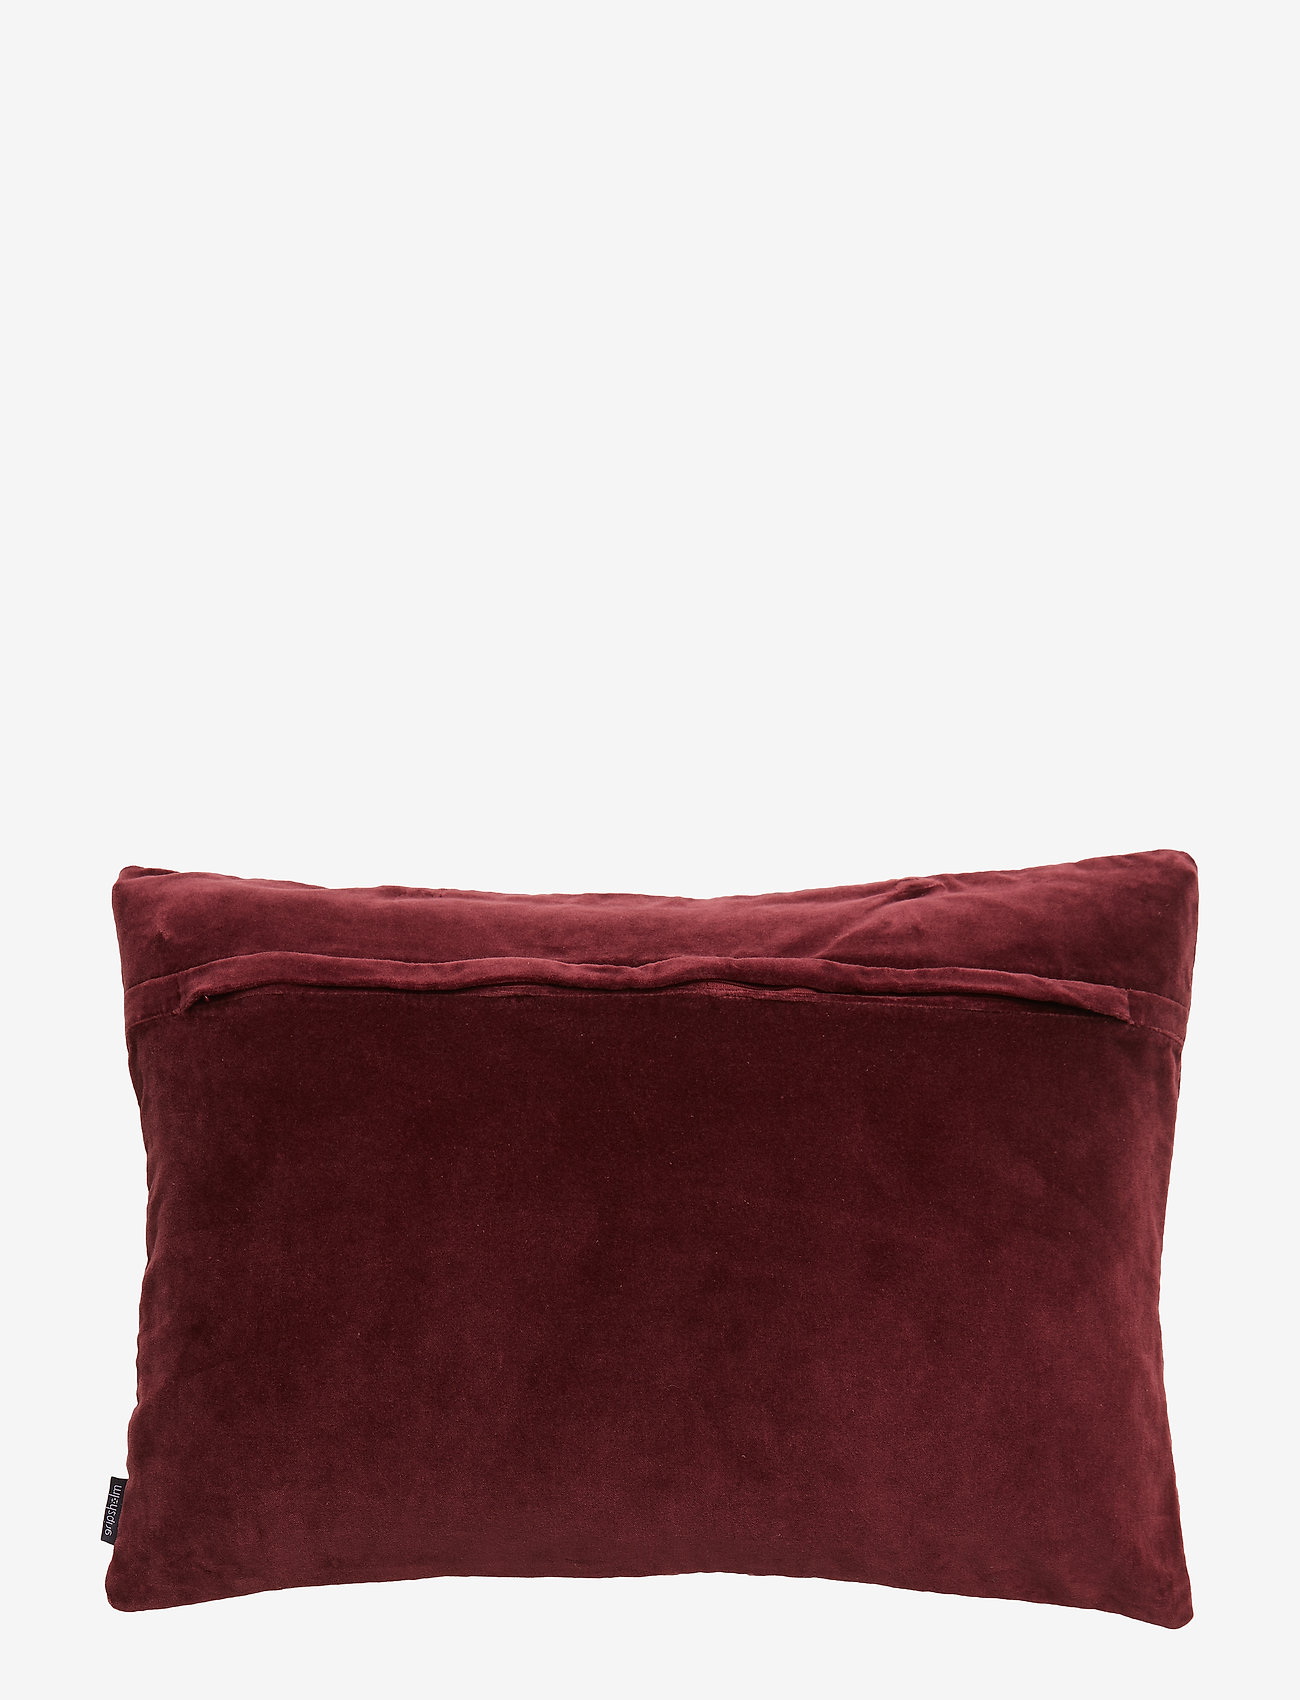 Gripsholm CUSHION COVER INA GOTS - Salon WINE - Akcesoria